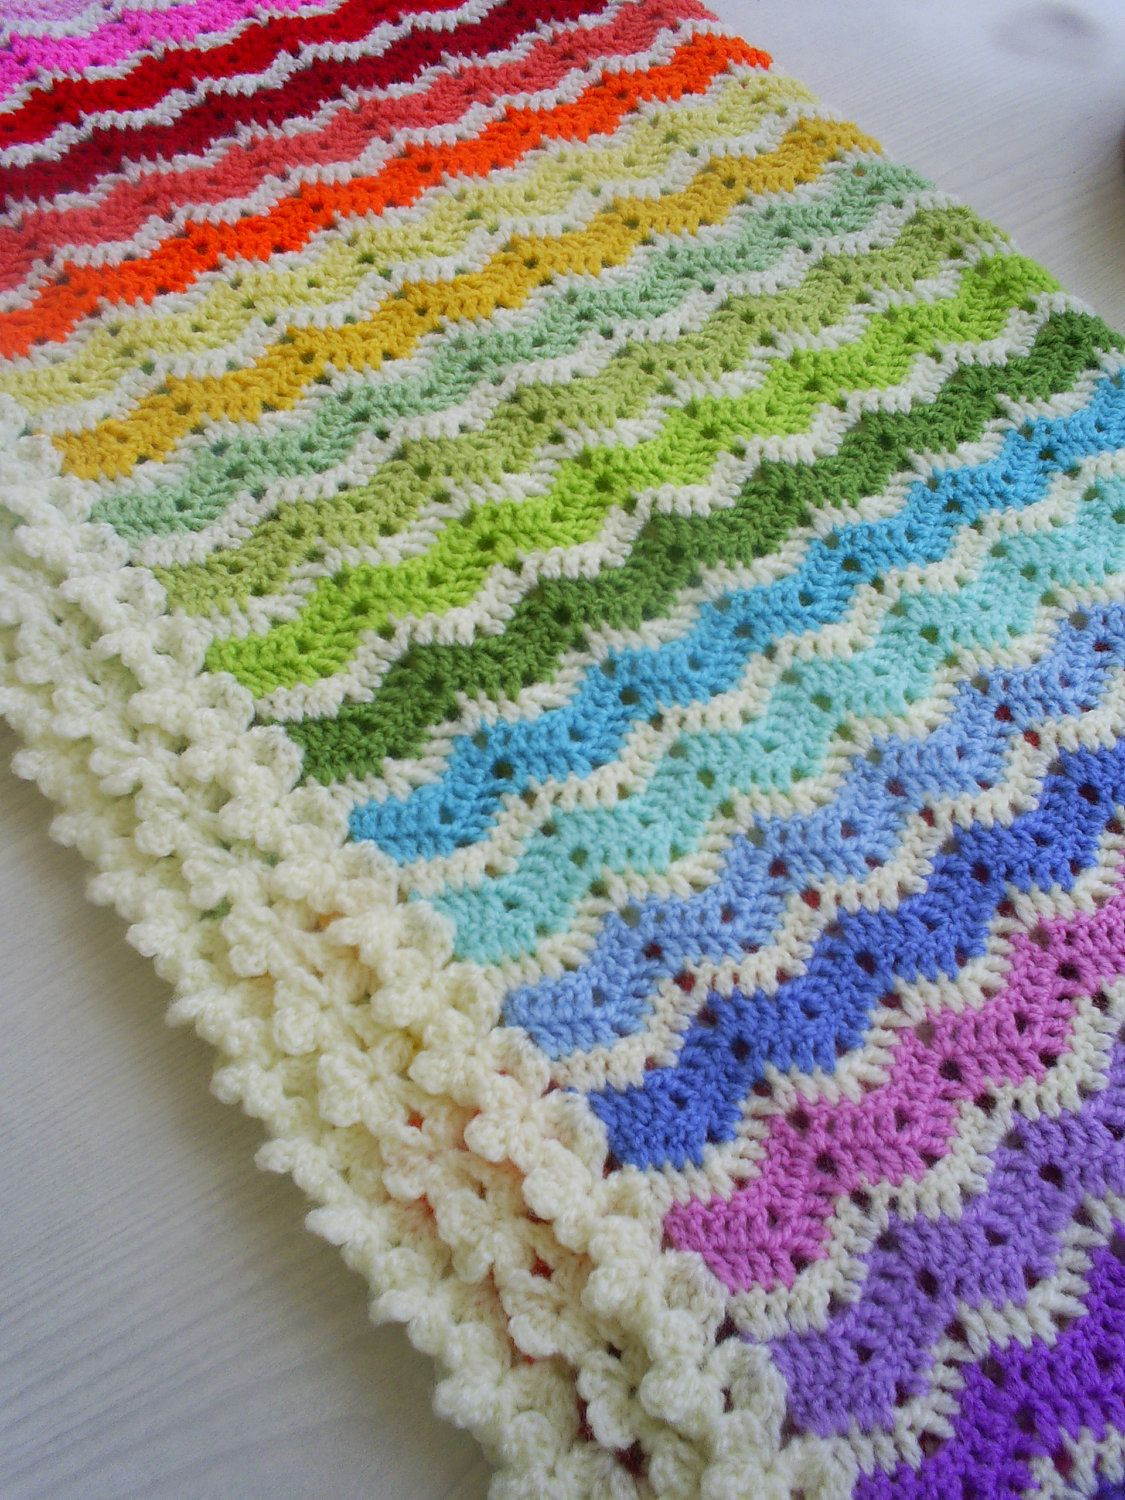 Rainbow Baby Blanket Crochet Pattern Inspirational the Rainbow Ajour Ripple Baby Blanket Afghan Of Attractive 46 Models Rainbow Baby Blanket Crochet Pattern